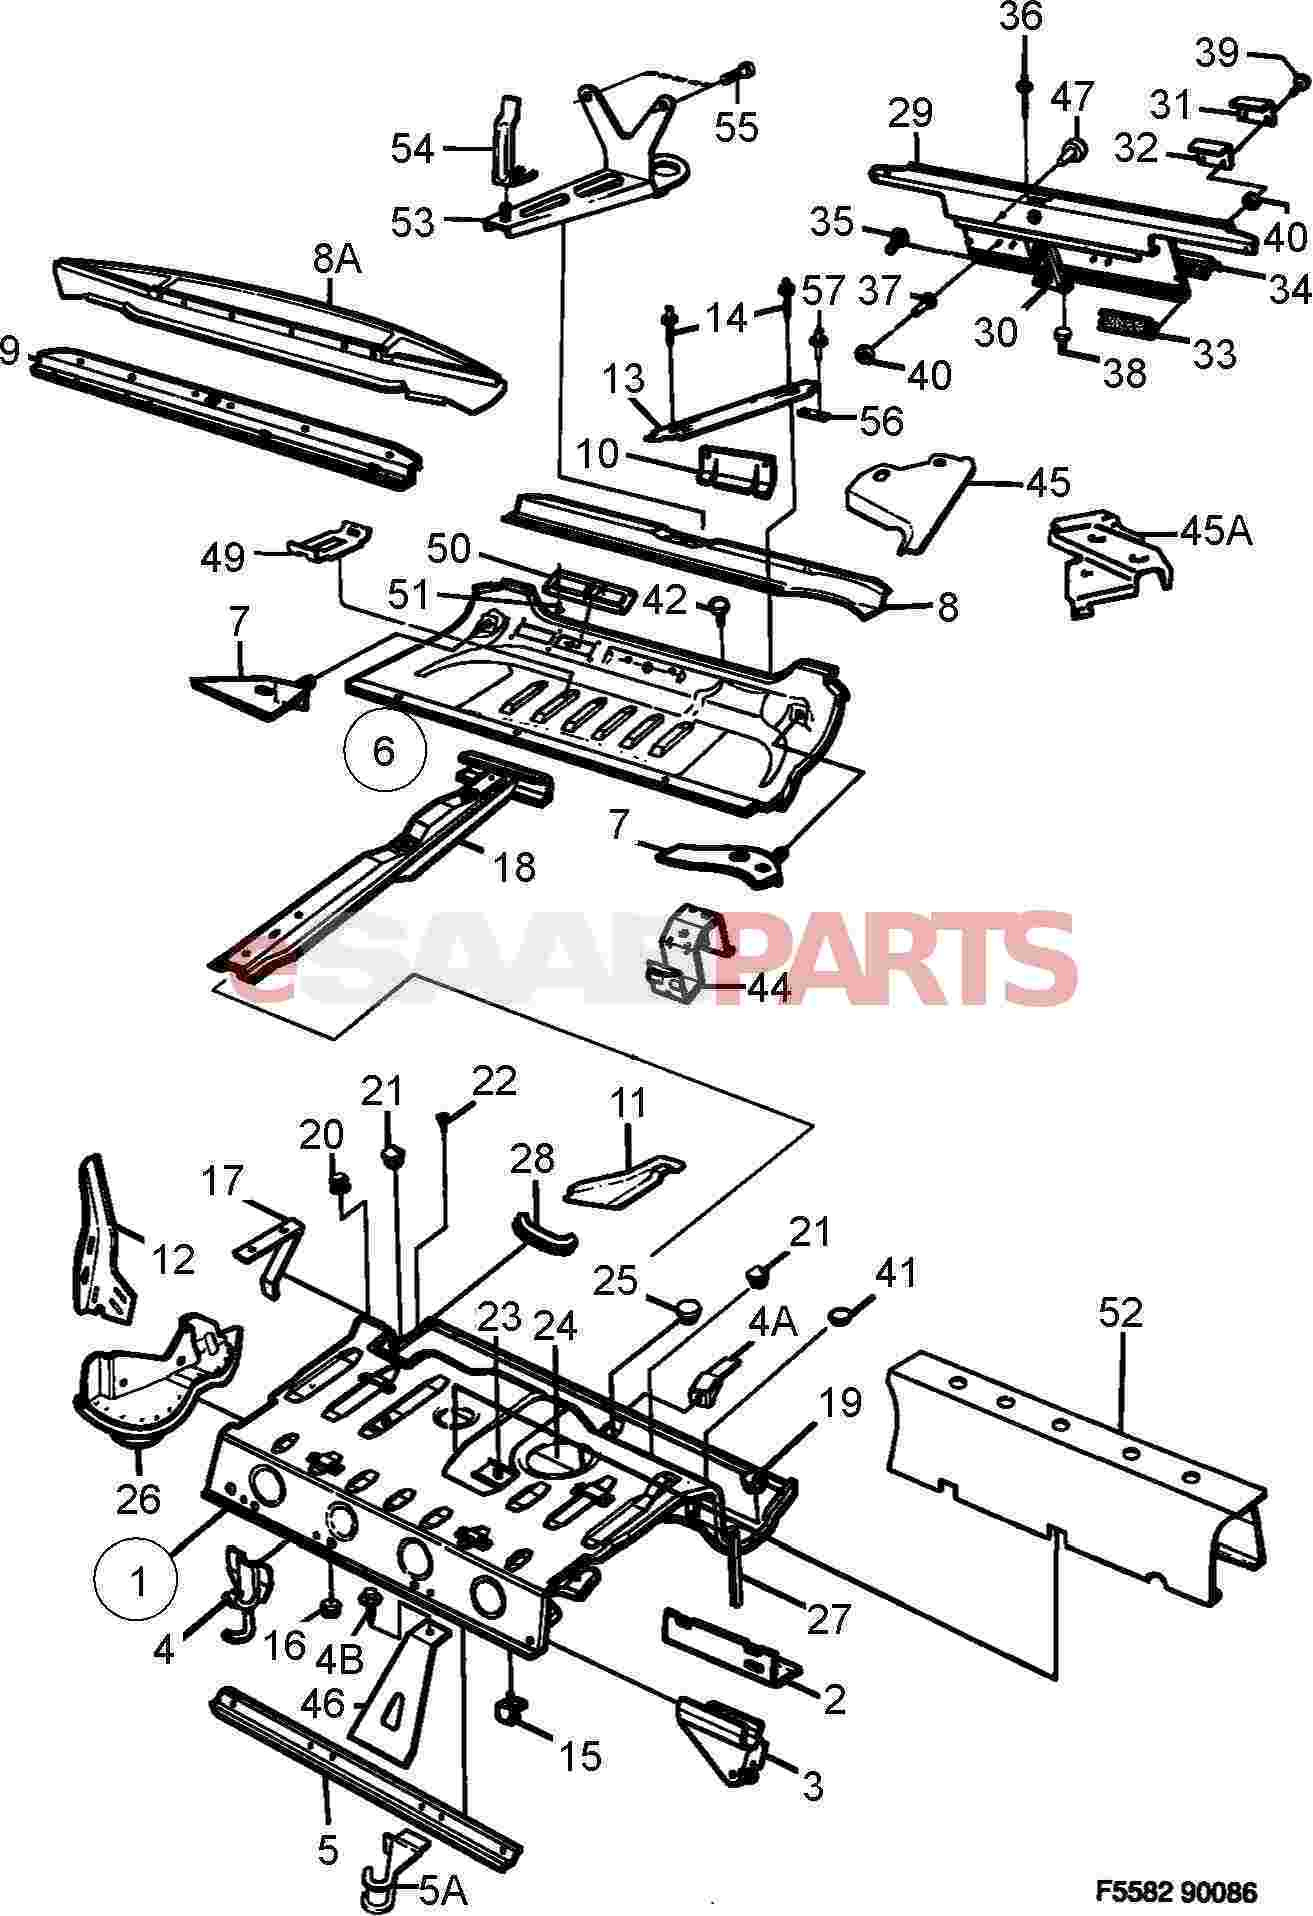 1992 Saab 900s Engine Diagram Ford Cortina Engine Diagram